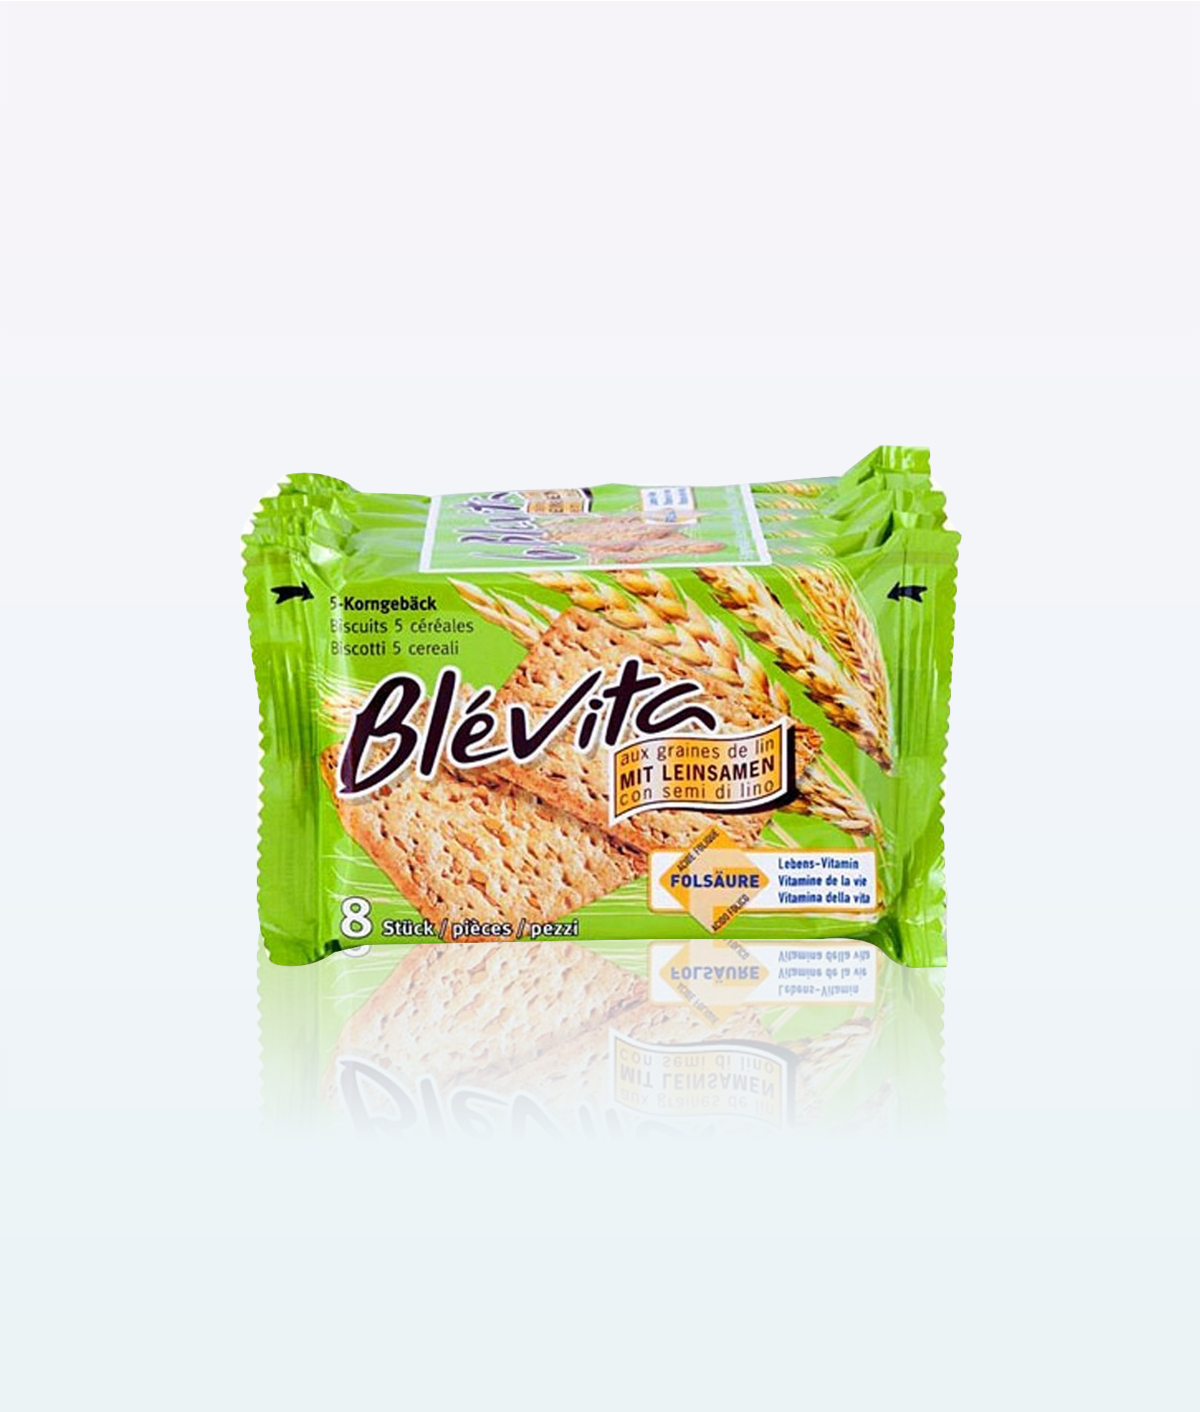 Blevita-Biscuit-Five-Grains-with-Flax-Seed